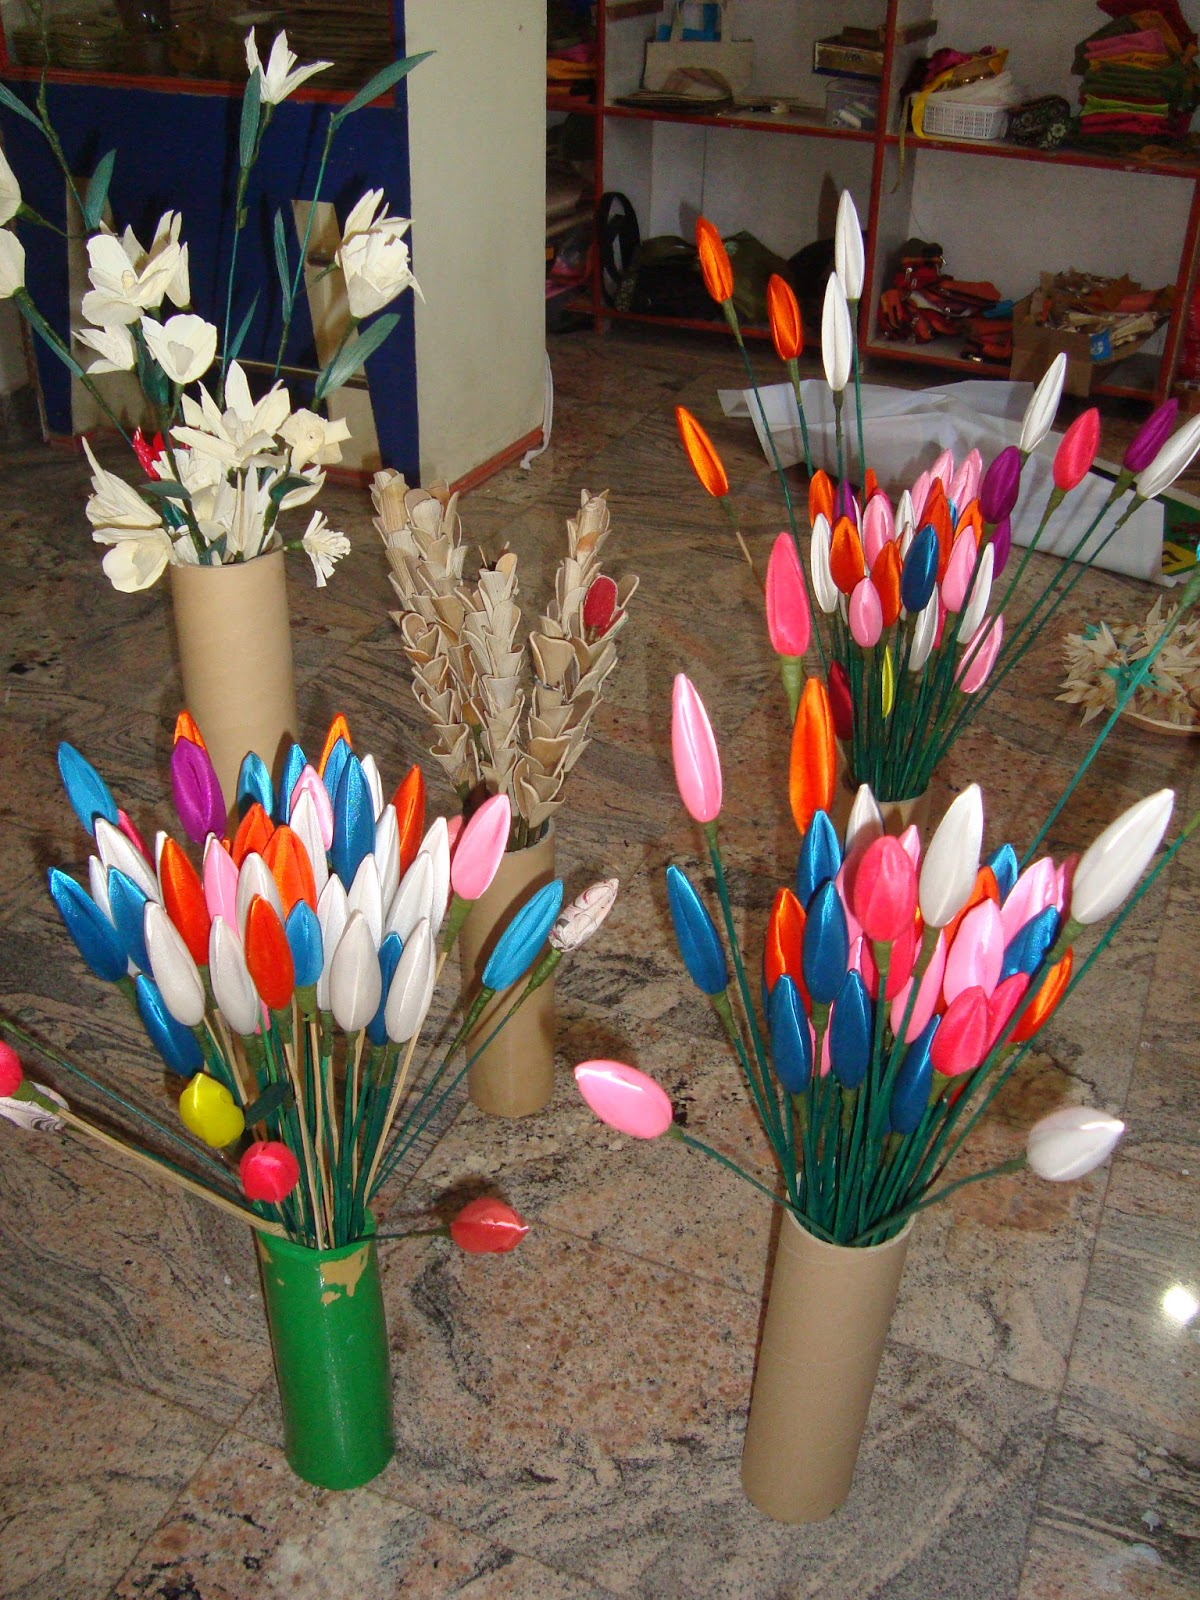 Waste Materials Of Crafts Work By Using Waste Material Of Flowets